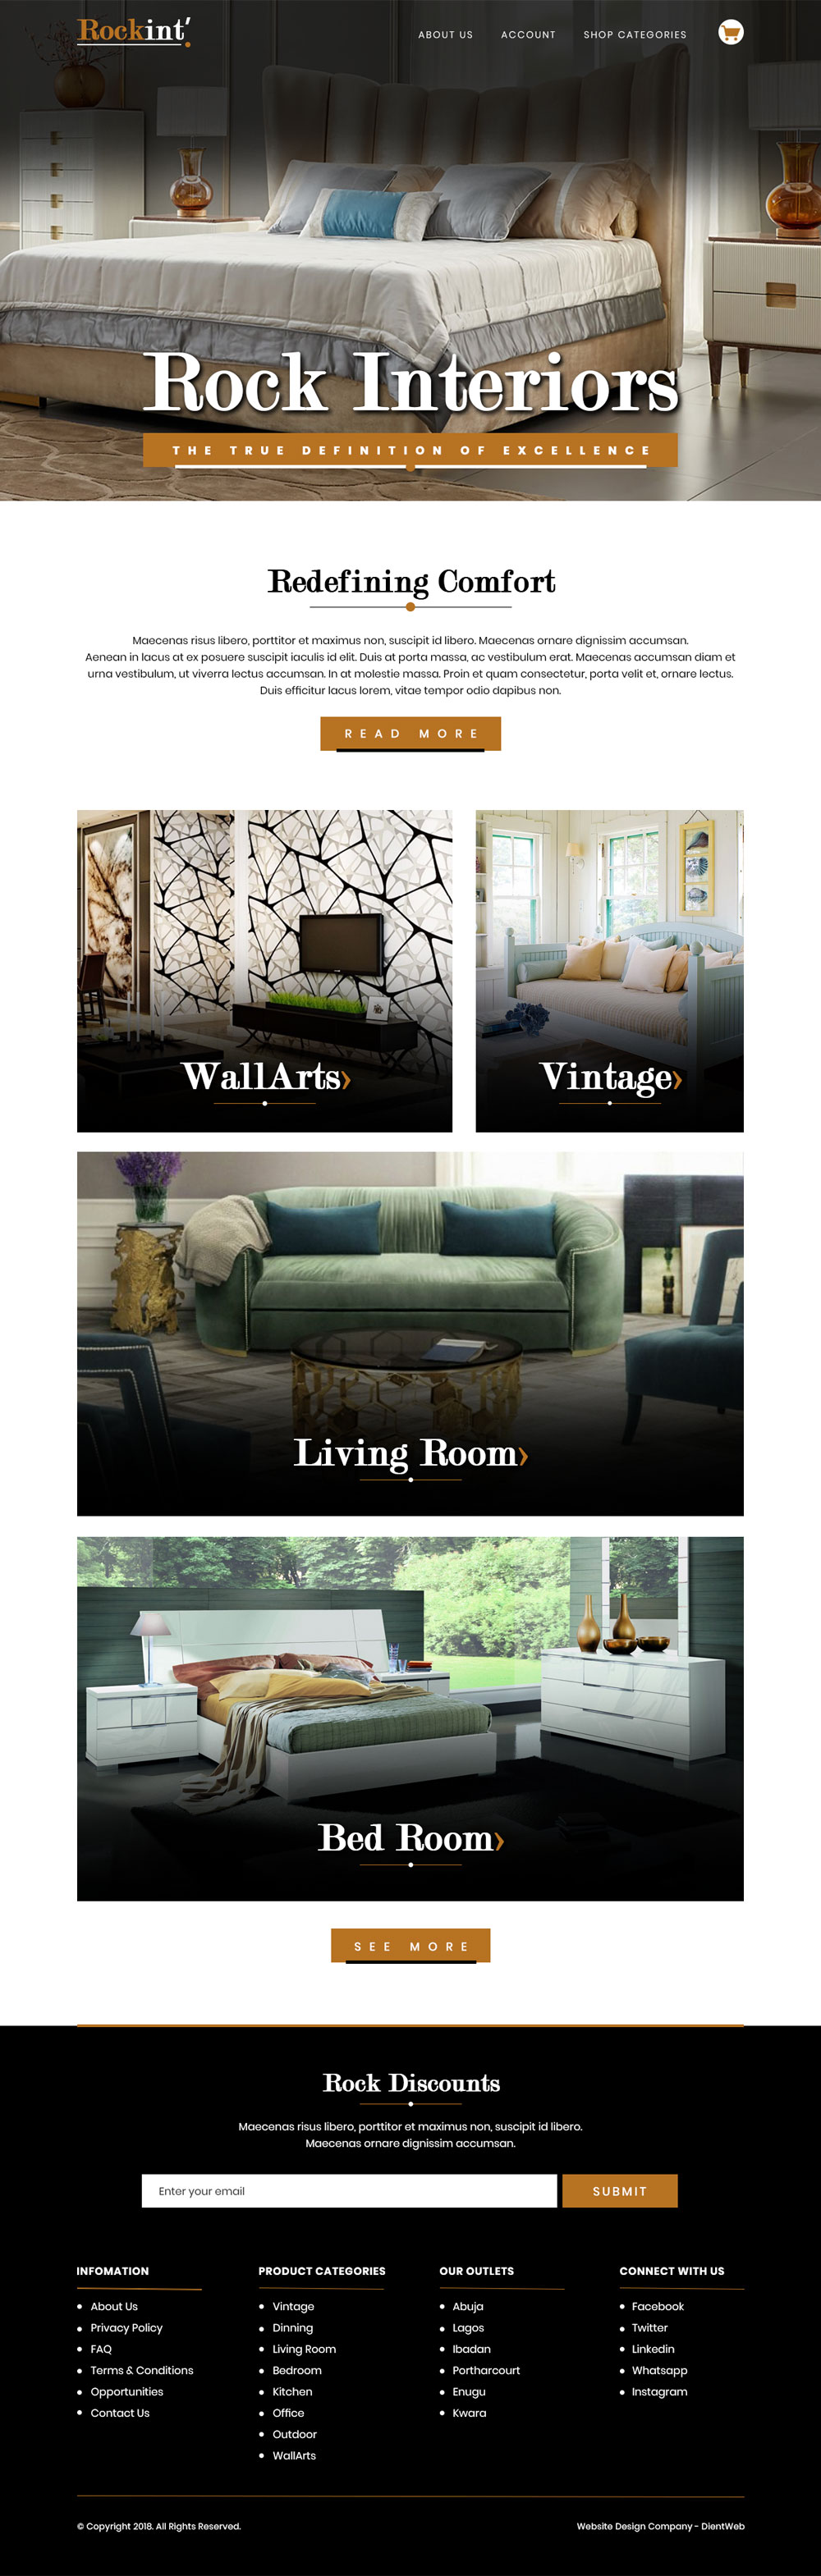 ecommerce website design for rock interiors